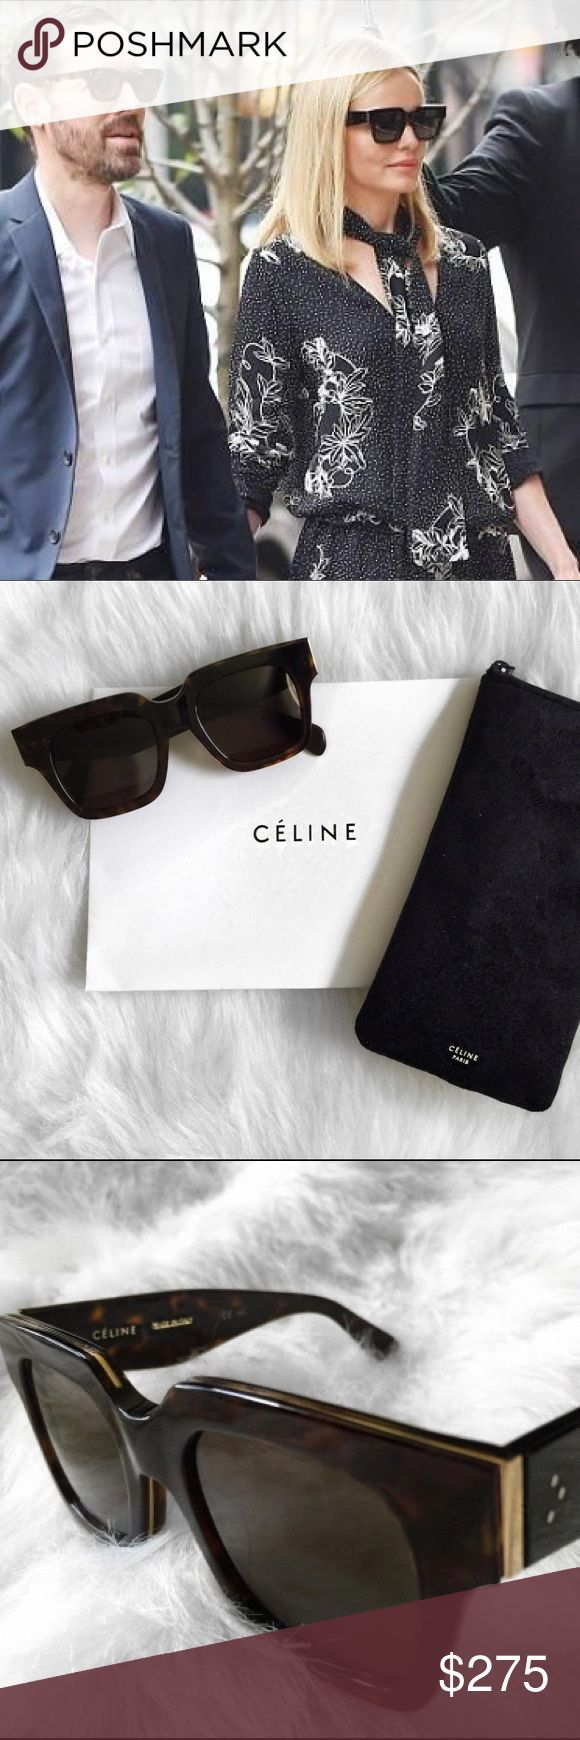 HP! Celine Strat Screen Sunglasses In excellent used condition! As seen on Kate Bosworth! Style number is 41097 in the color Dark Havana. Still love these sunnies, but I want a rounder style. Comes with the original Celine paper packaging, sunglasses pouch, and cleaning cloth. Willing to go lower on Merc!  Celine Accessories Sunglasses